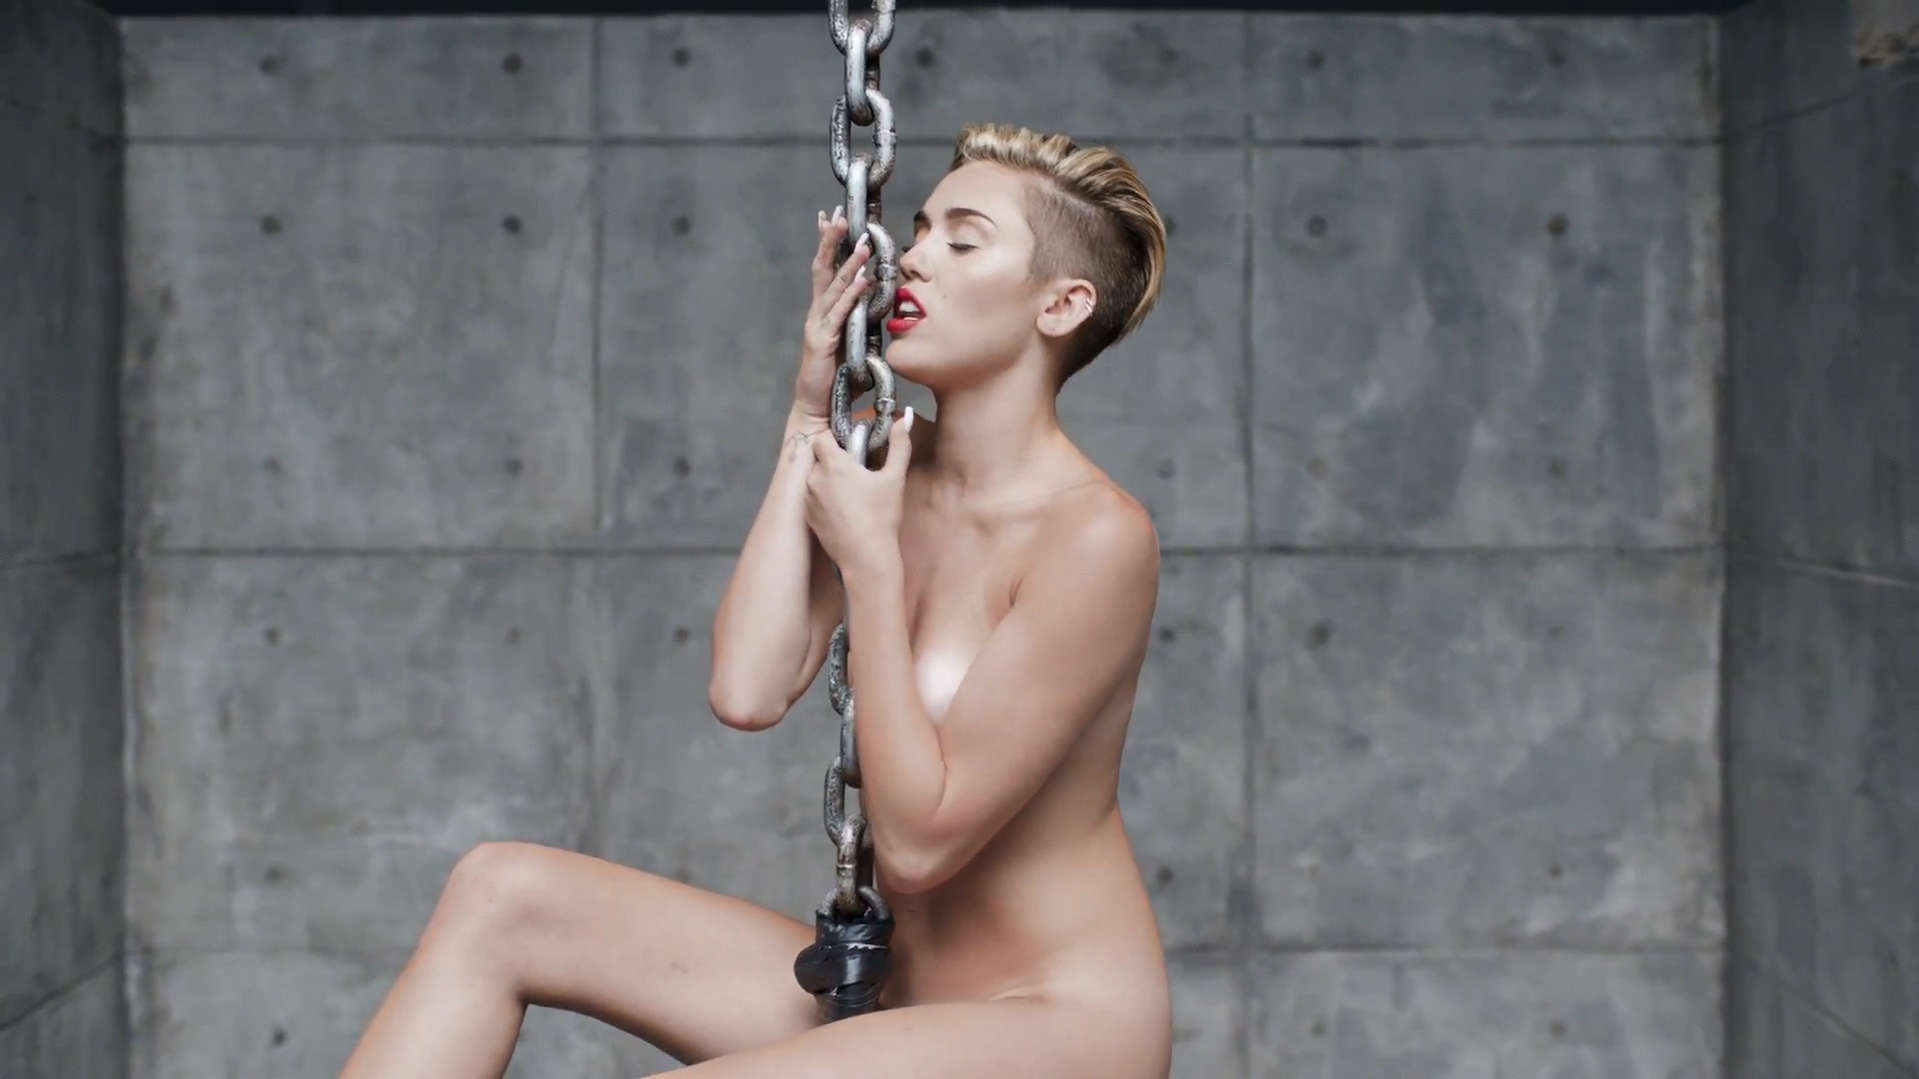 Miley-cyrus-wrecking-ball-video-stills-08